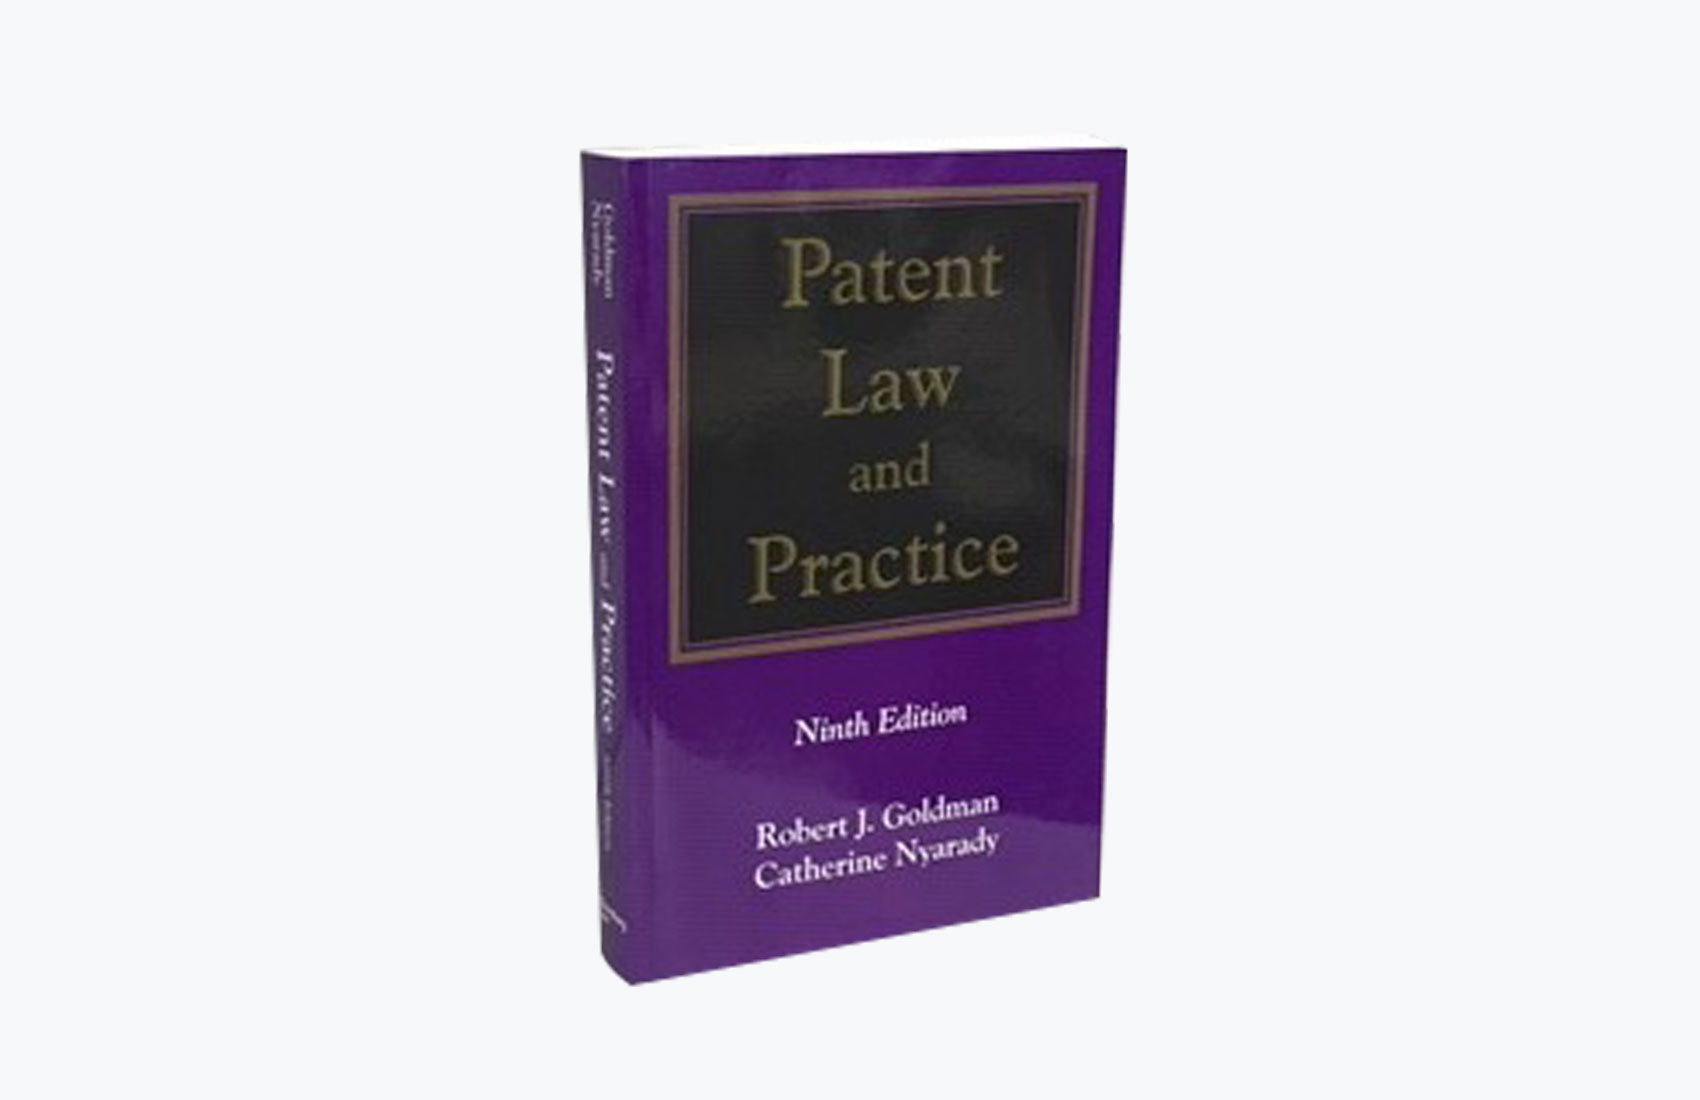 Patent Law and Practice (formerly Schwartz's), Ninth Edition